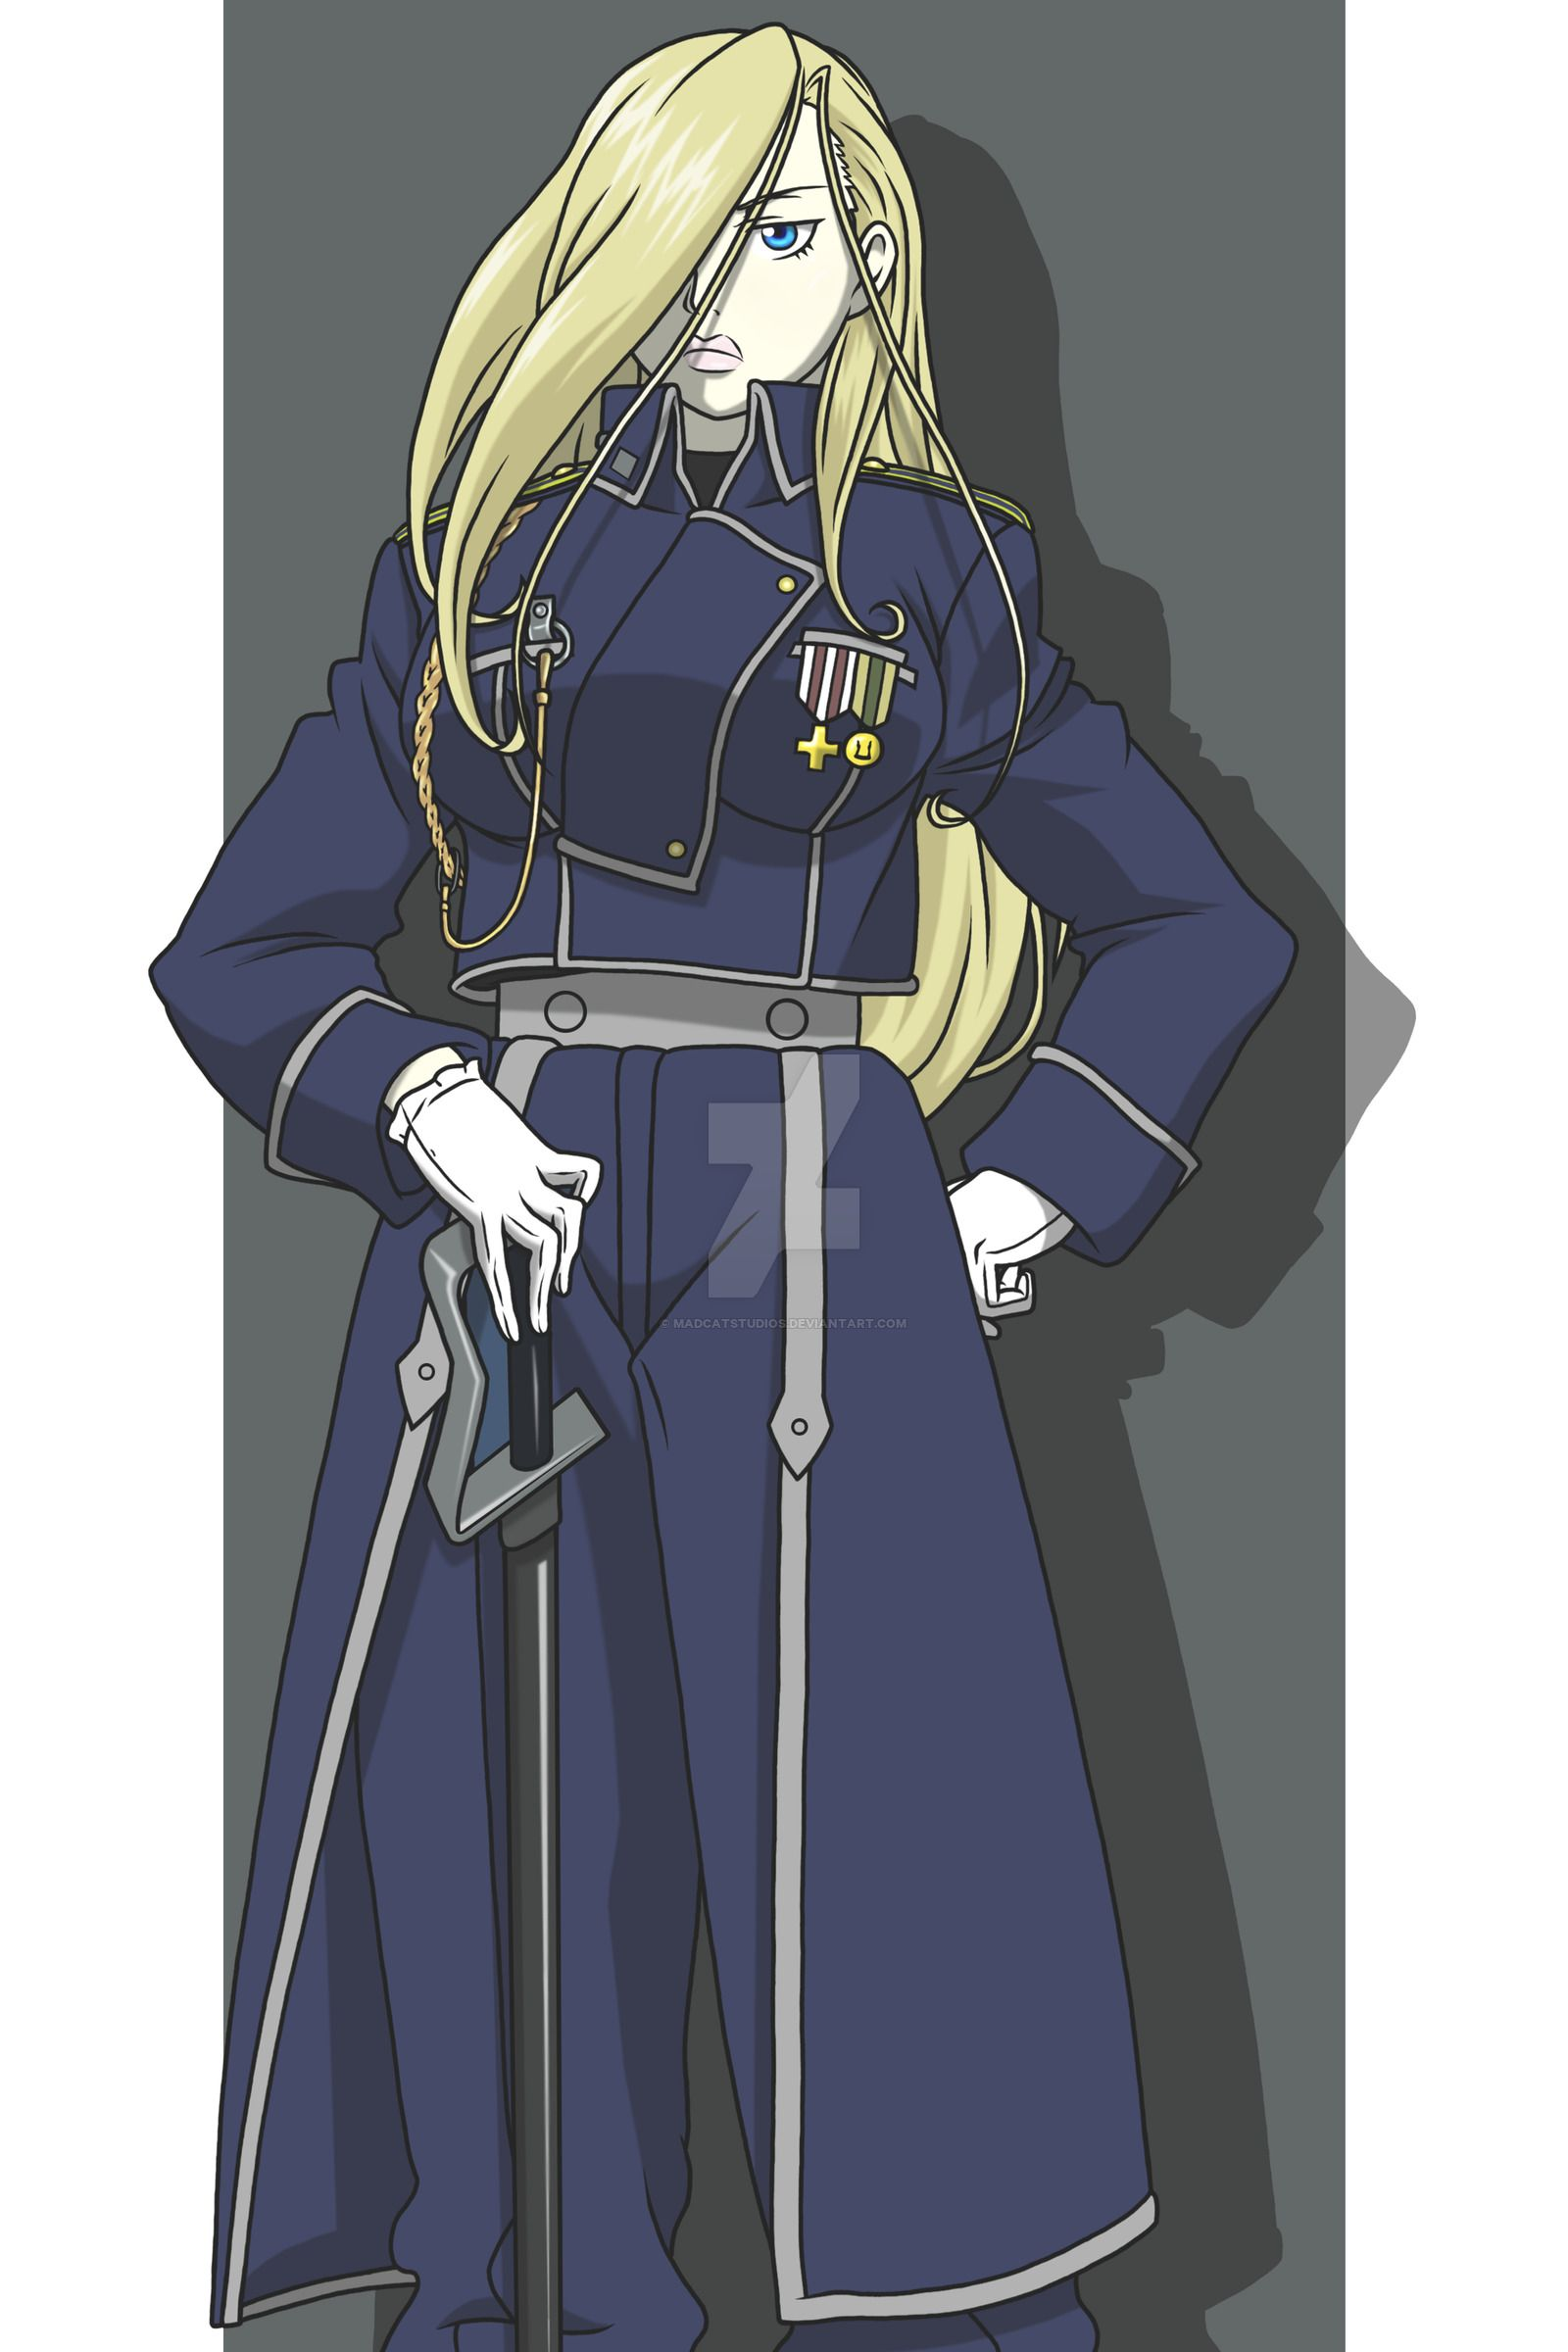 Olivier Mira Armstrong Fanart Fullmetal Alchemist Fullmetal Alchemist Edward Fullmetal Alchemist Brotherhood Looking for the best olivier armstrong wallpaper? olivier mira armstrong fanart